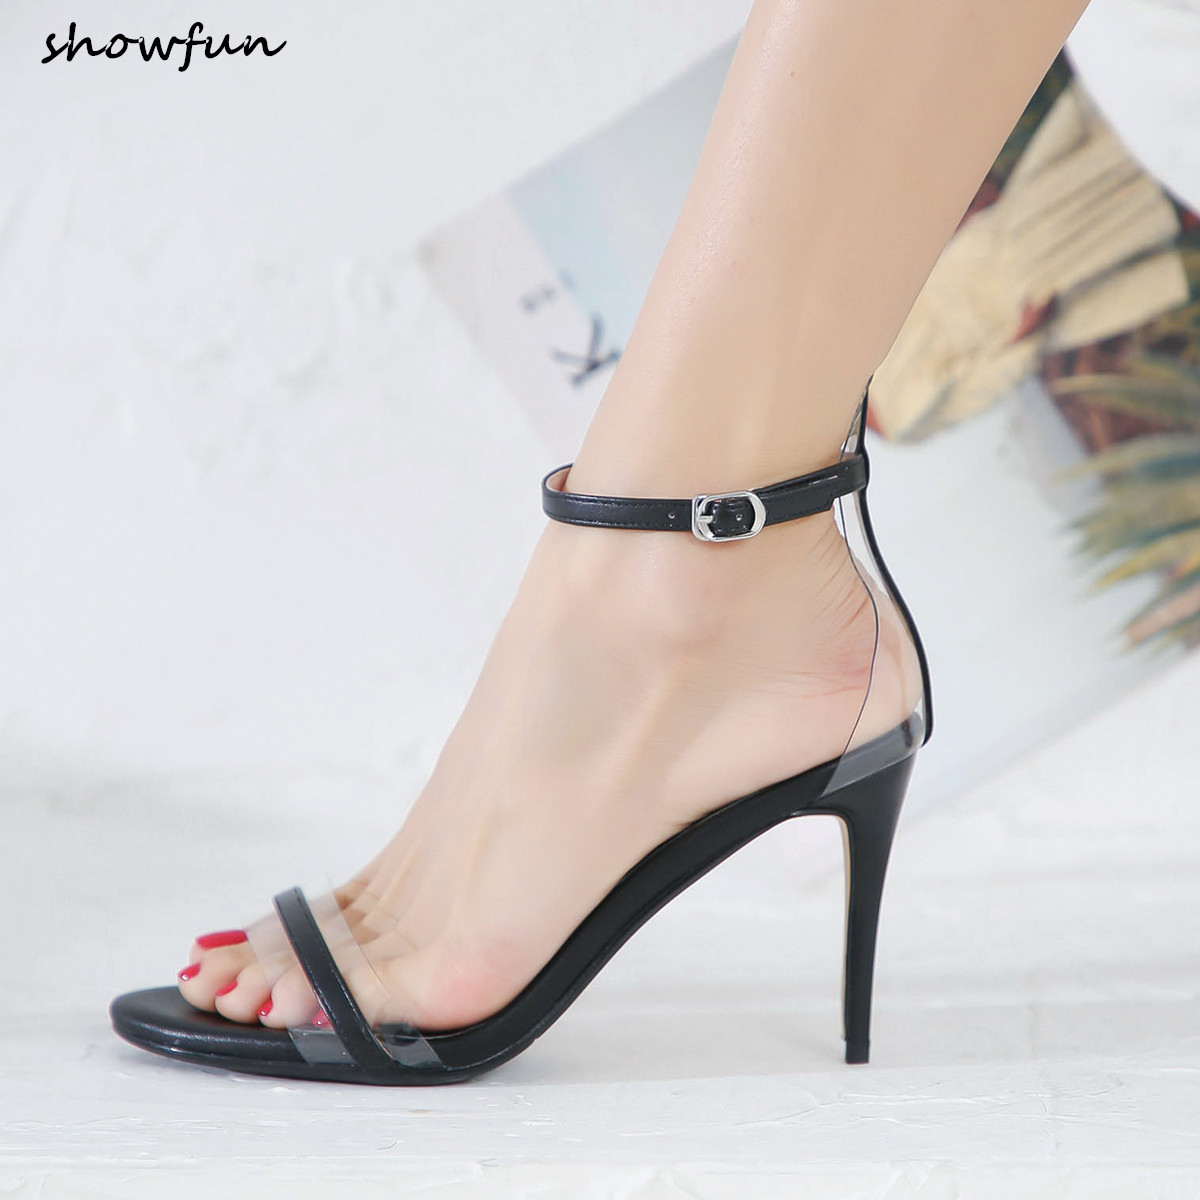 Women s genuine leather ankle strap high heel sandals open toe summer sexy ladies dress shoes